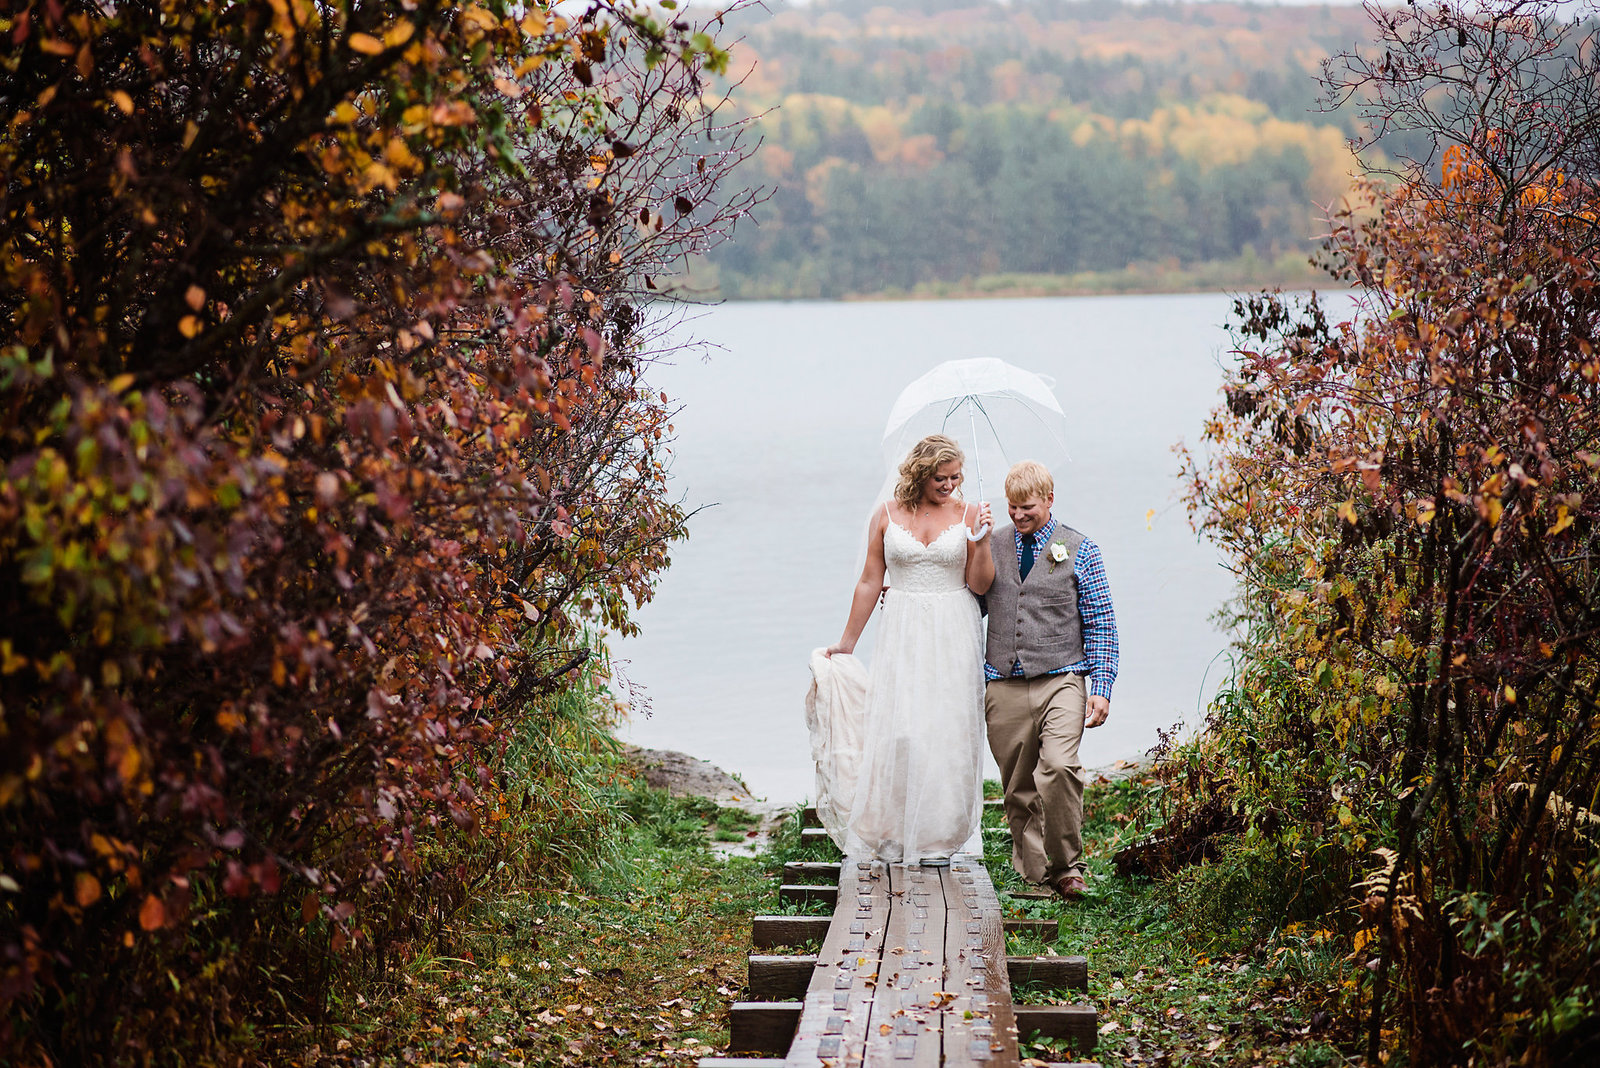 rainy wedding photos, bride and groom in the rain, clear umbrella wedding, fall wedding in Vermont, bride and groom at a lake